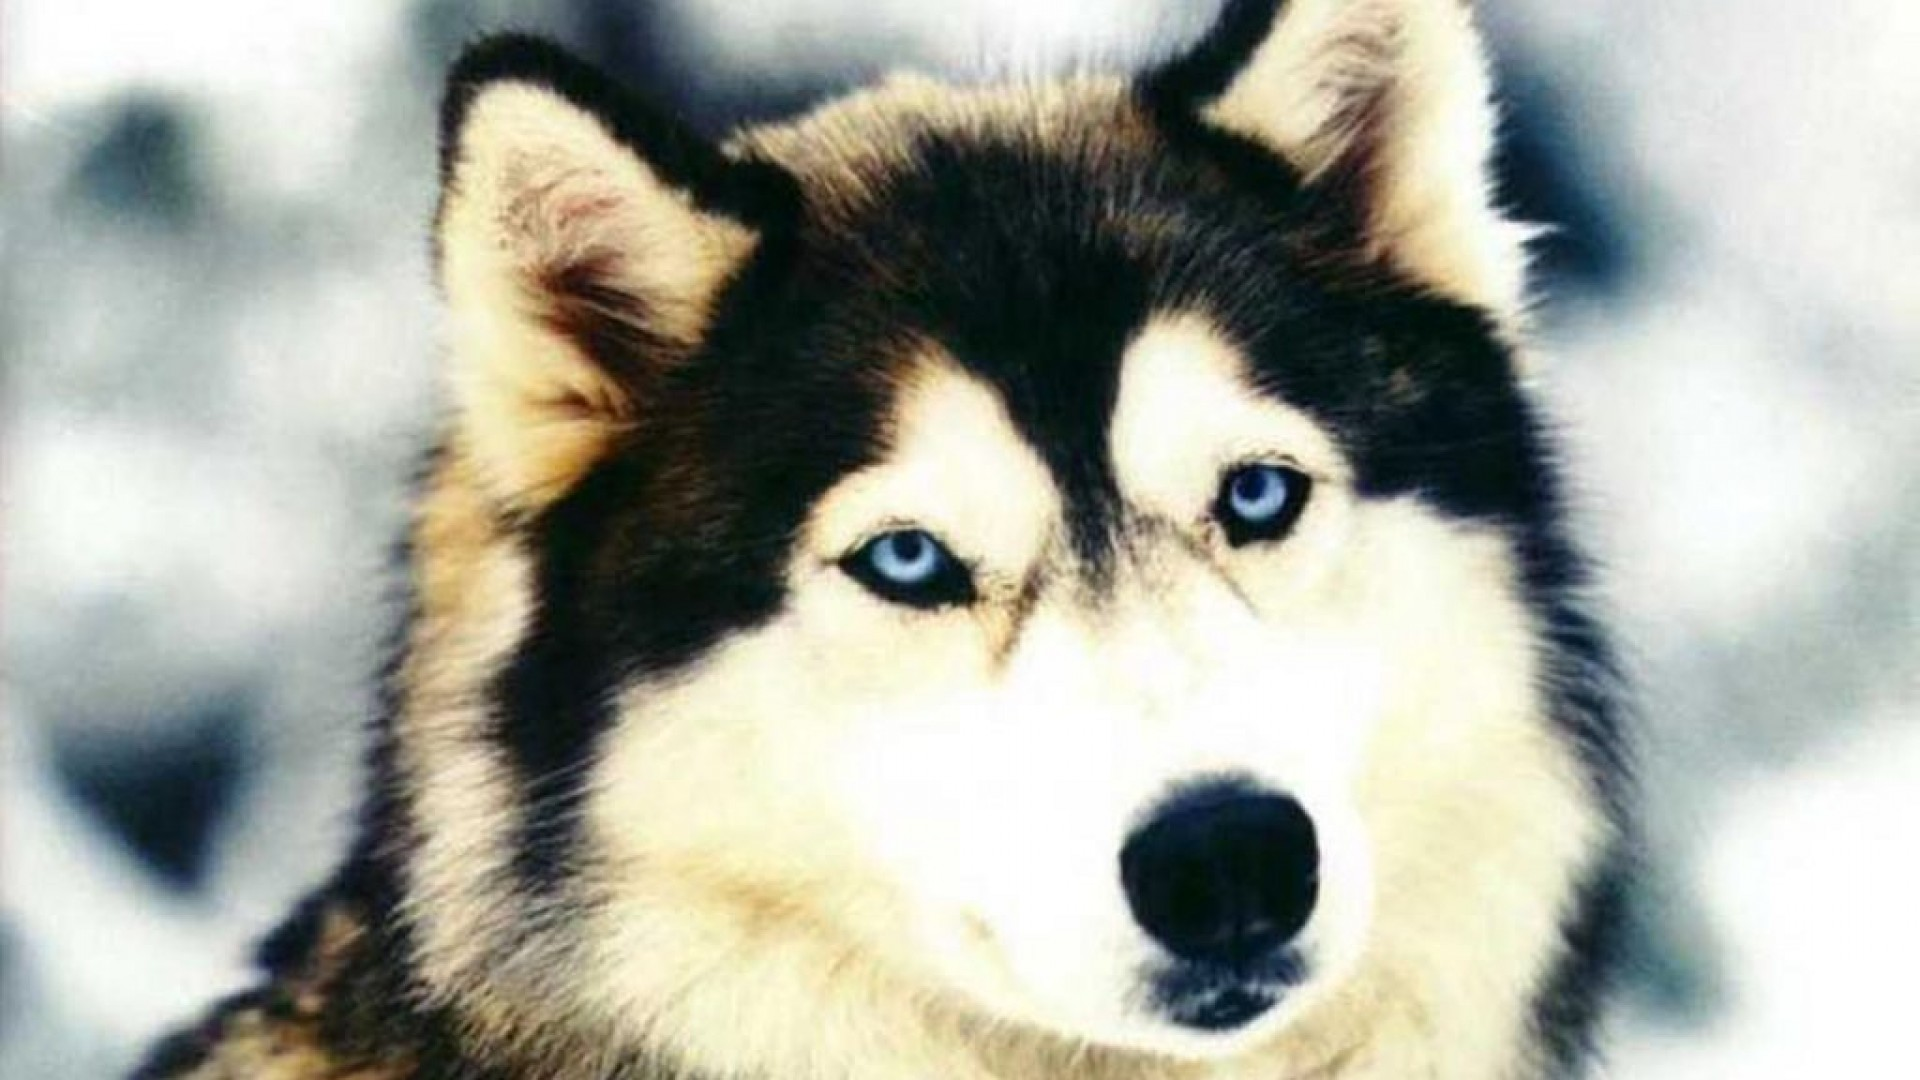 Husky HD Wallpapers  Backgrounds  Wallpaper Page  1920x1080